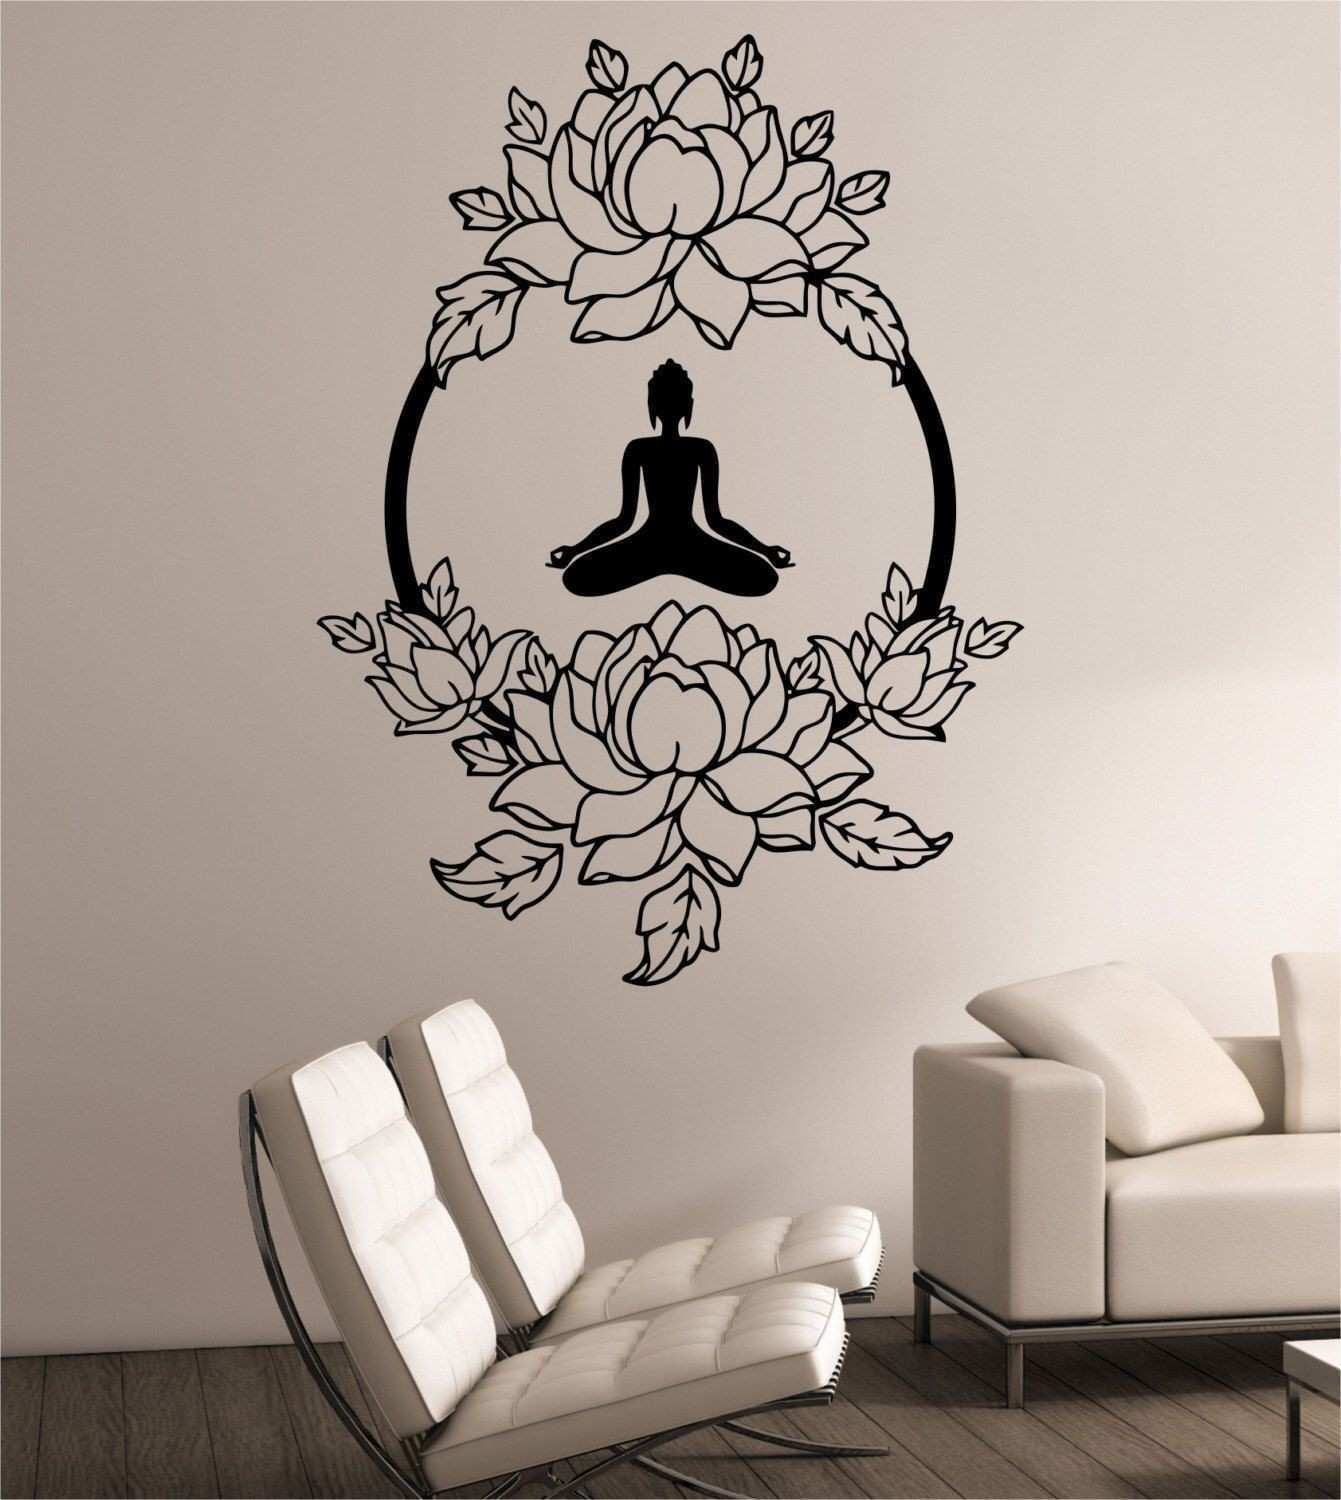 Lovely islamic Wall Decals Amazon